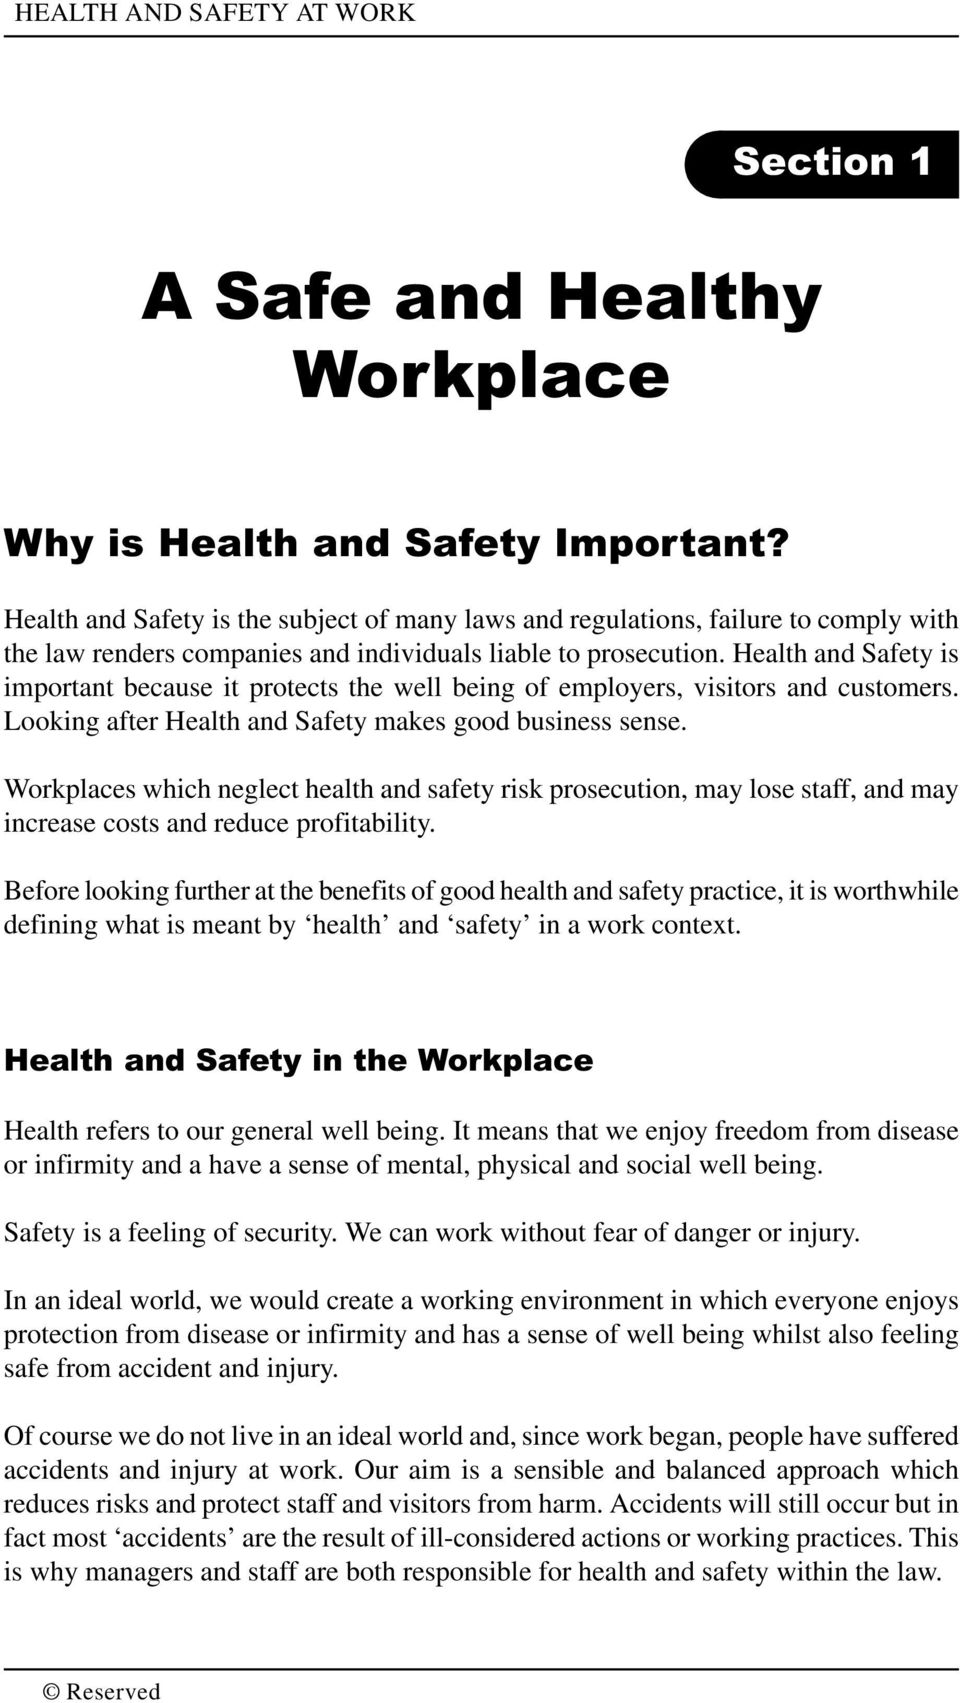 Health and Safety is important because it protects the well being of employers, visitors and customers. Looking after Health and Safety makes good business sense.